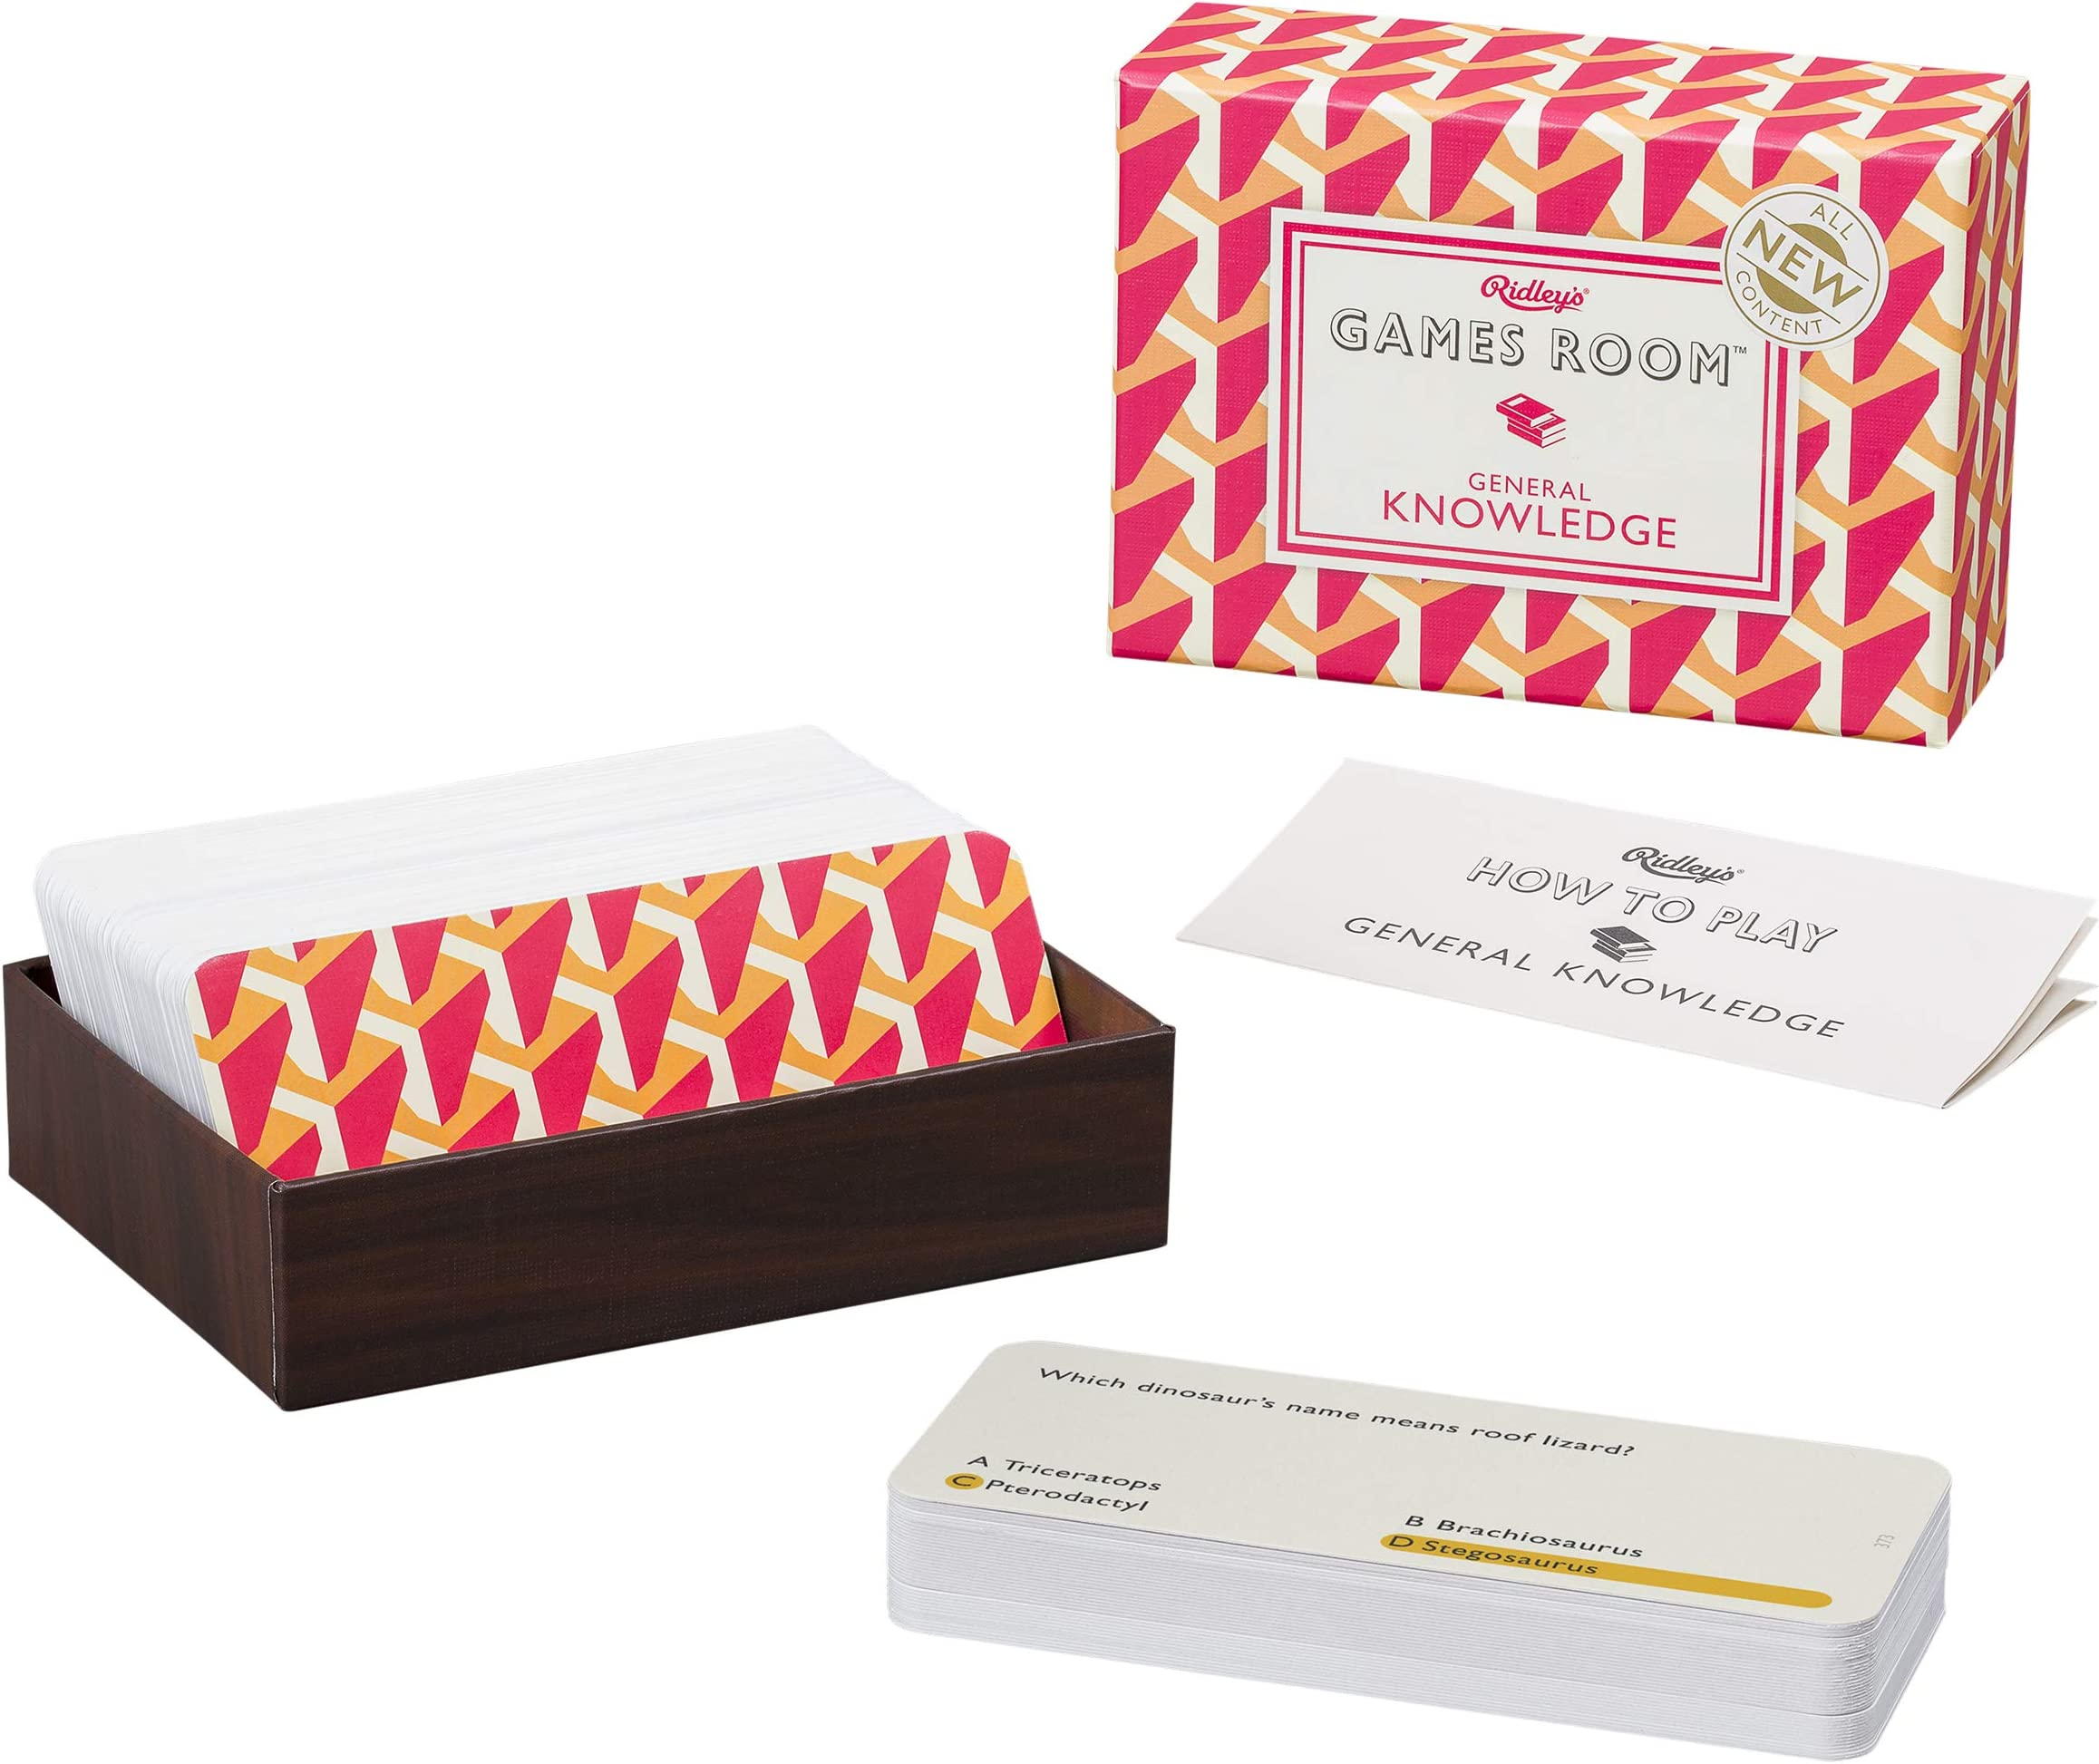 After Dinner Trivia card set 1 Die and a Set of Rules 1,200 Trivia Questions